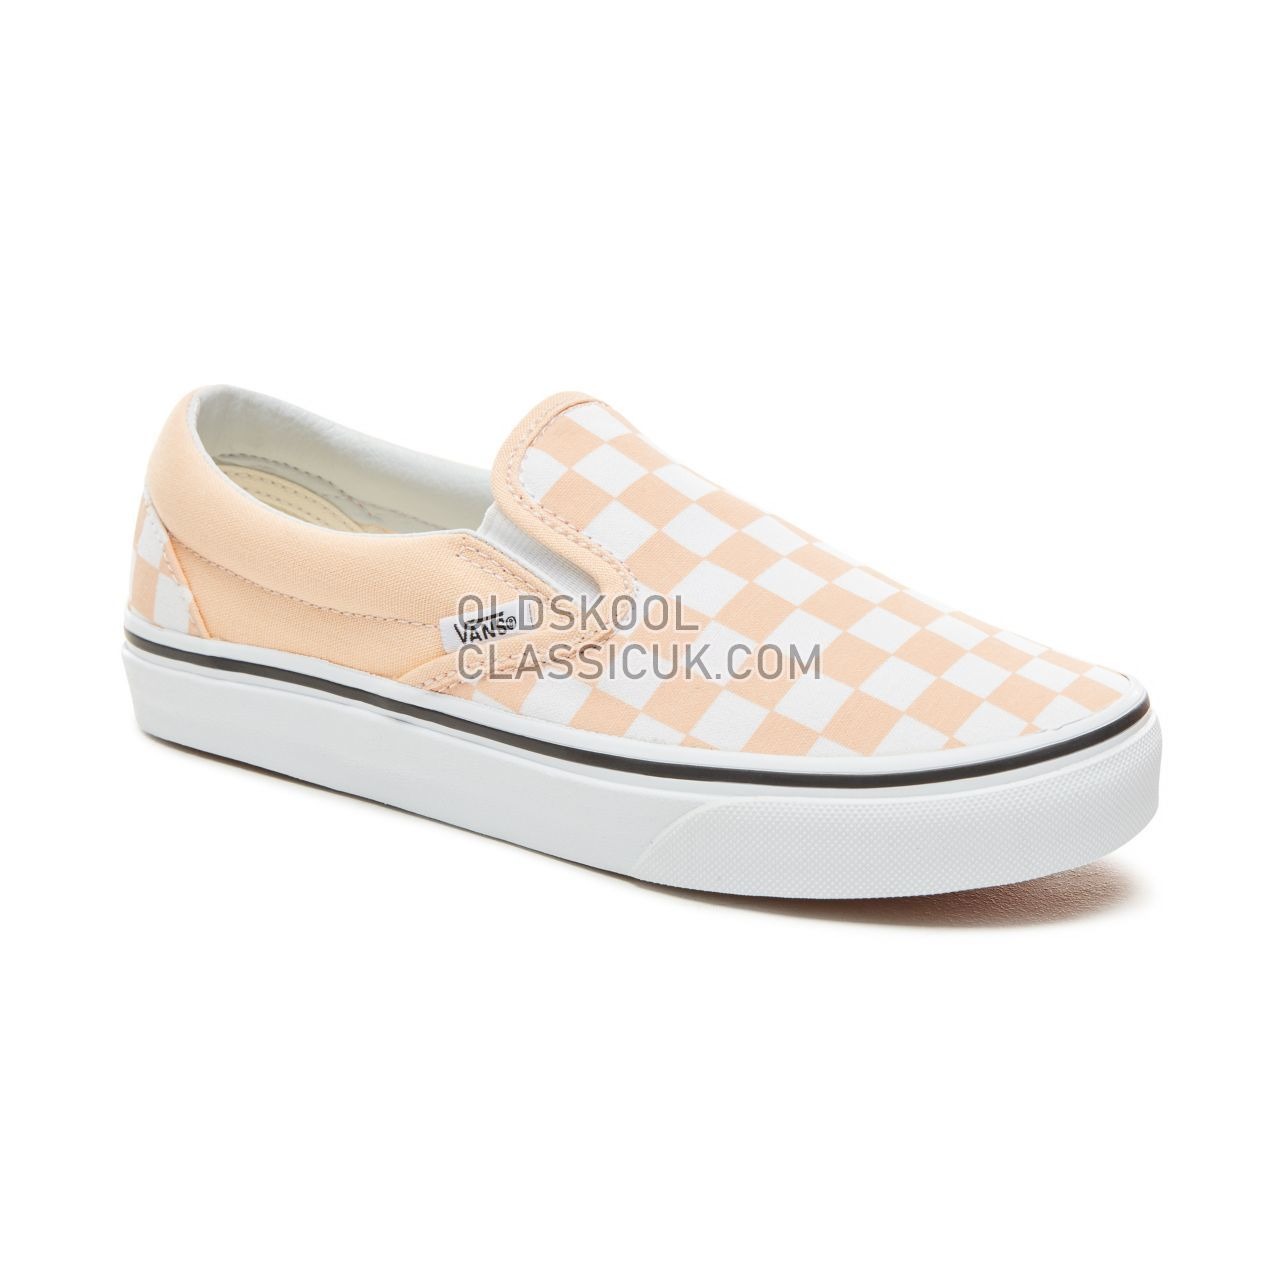 ddeacf5352 ... Vans Color Theory Checkerboard Classic Slip-On Sneakers (Unisex) Mens  (Checkerboard) ...